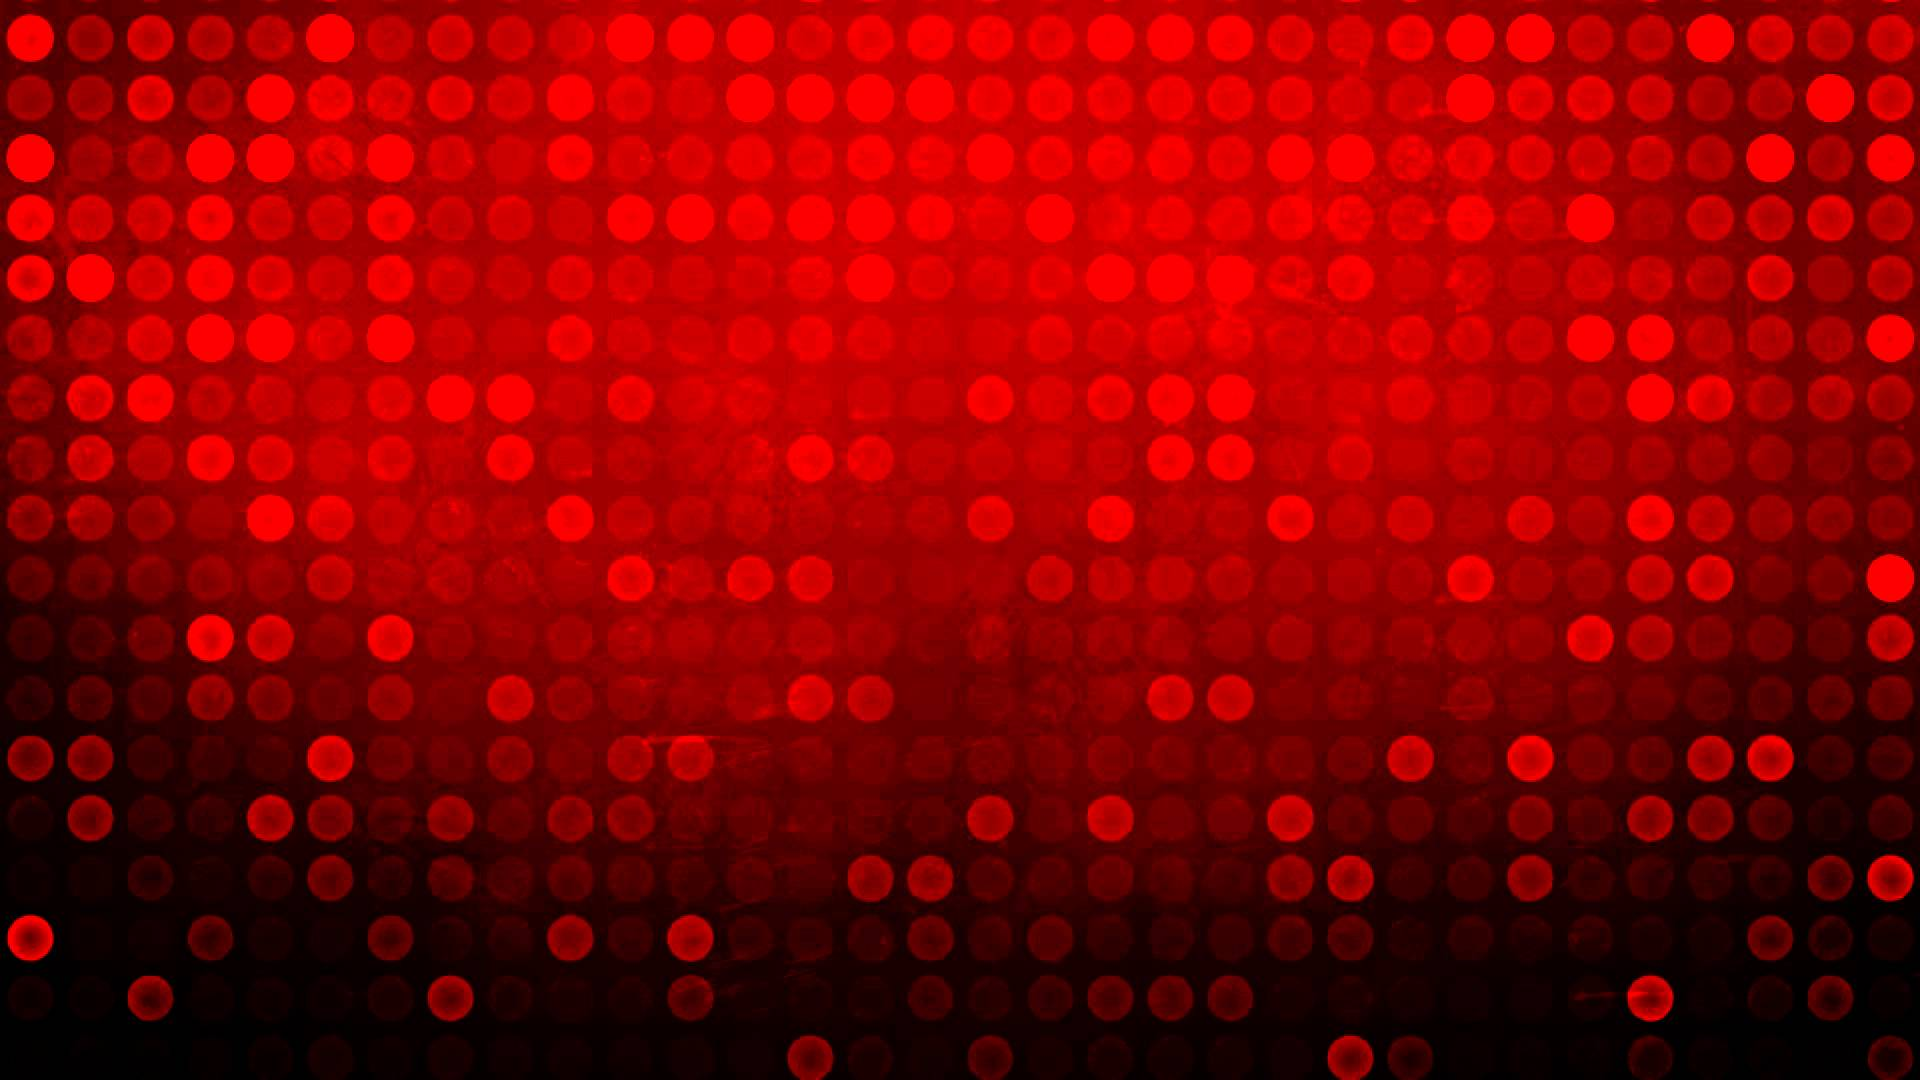 Red graphics black and white library Red Dots Rising - HD Motion Graphics Background Loop - YouTube black and white library